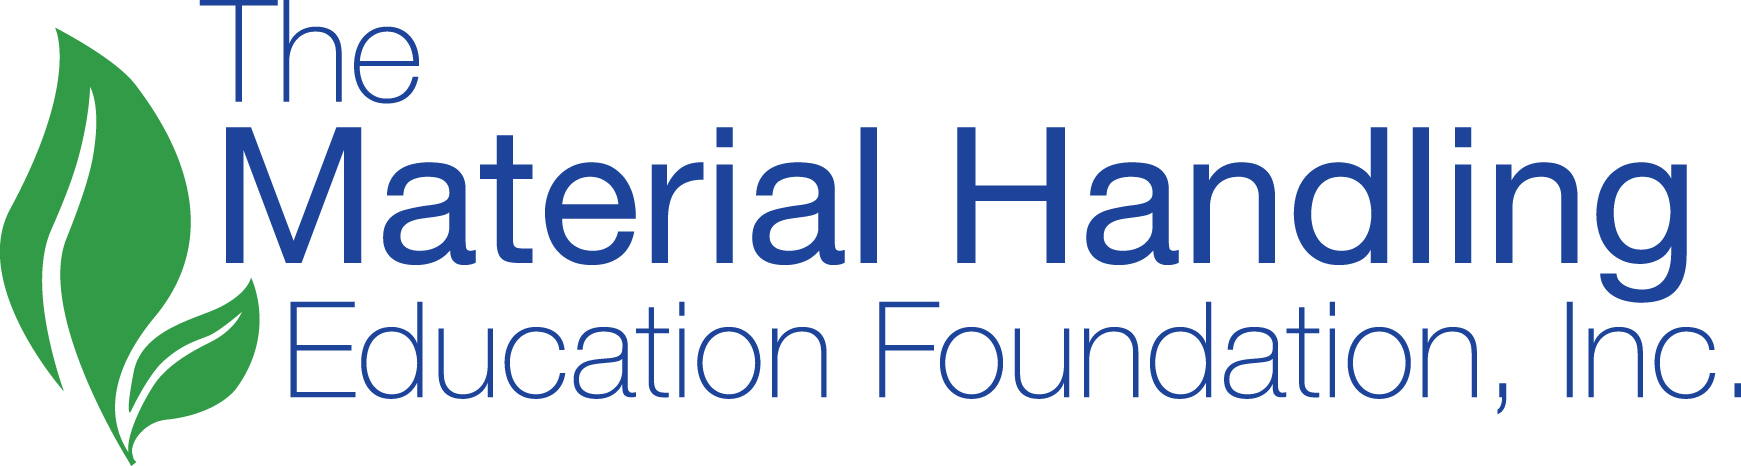 Material Handling Education Foundation, Inc.